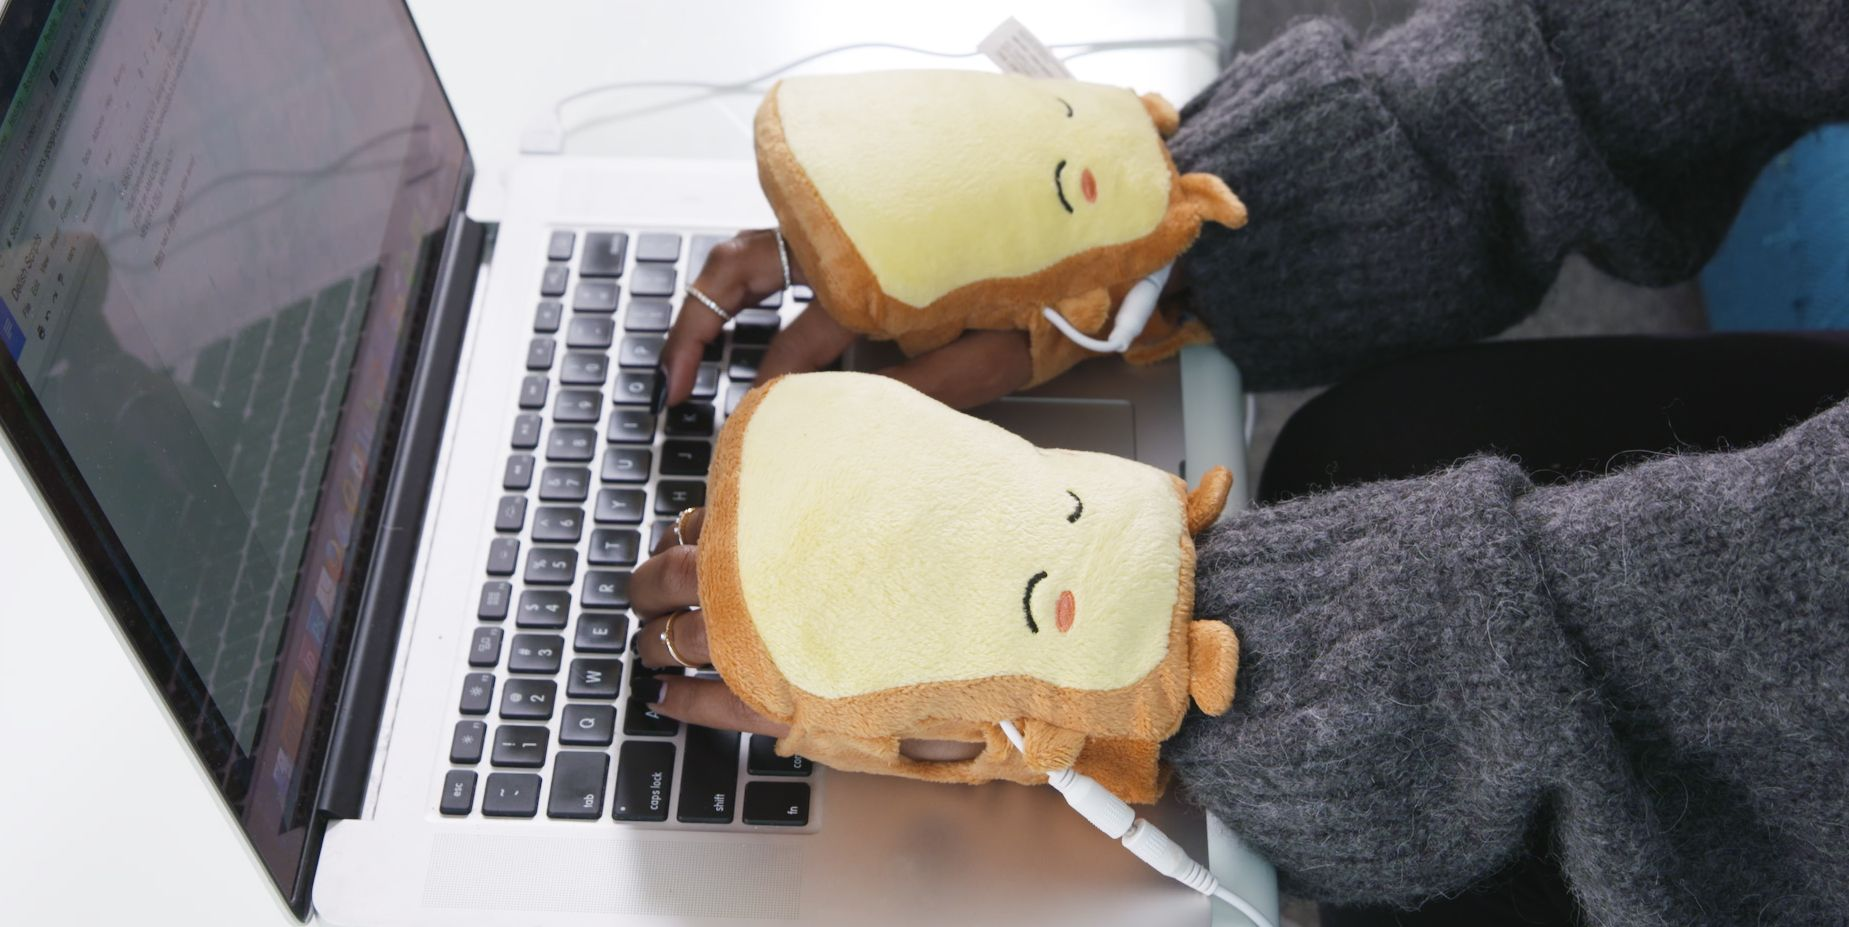 These Toast Hand Warmers Will Be a Lifesaver in Any Freezing Office